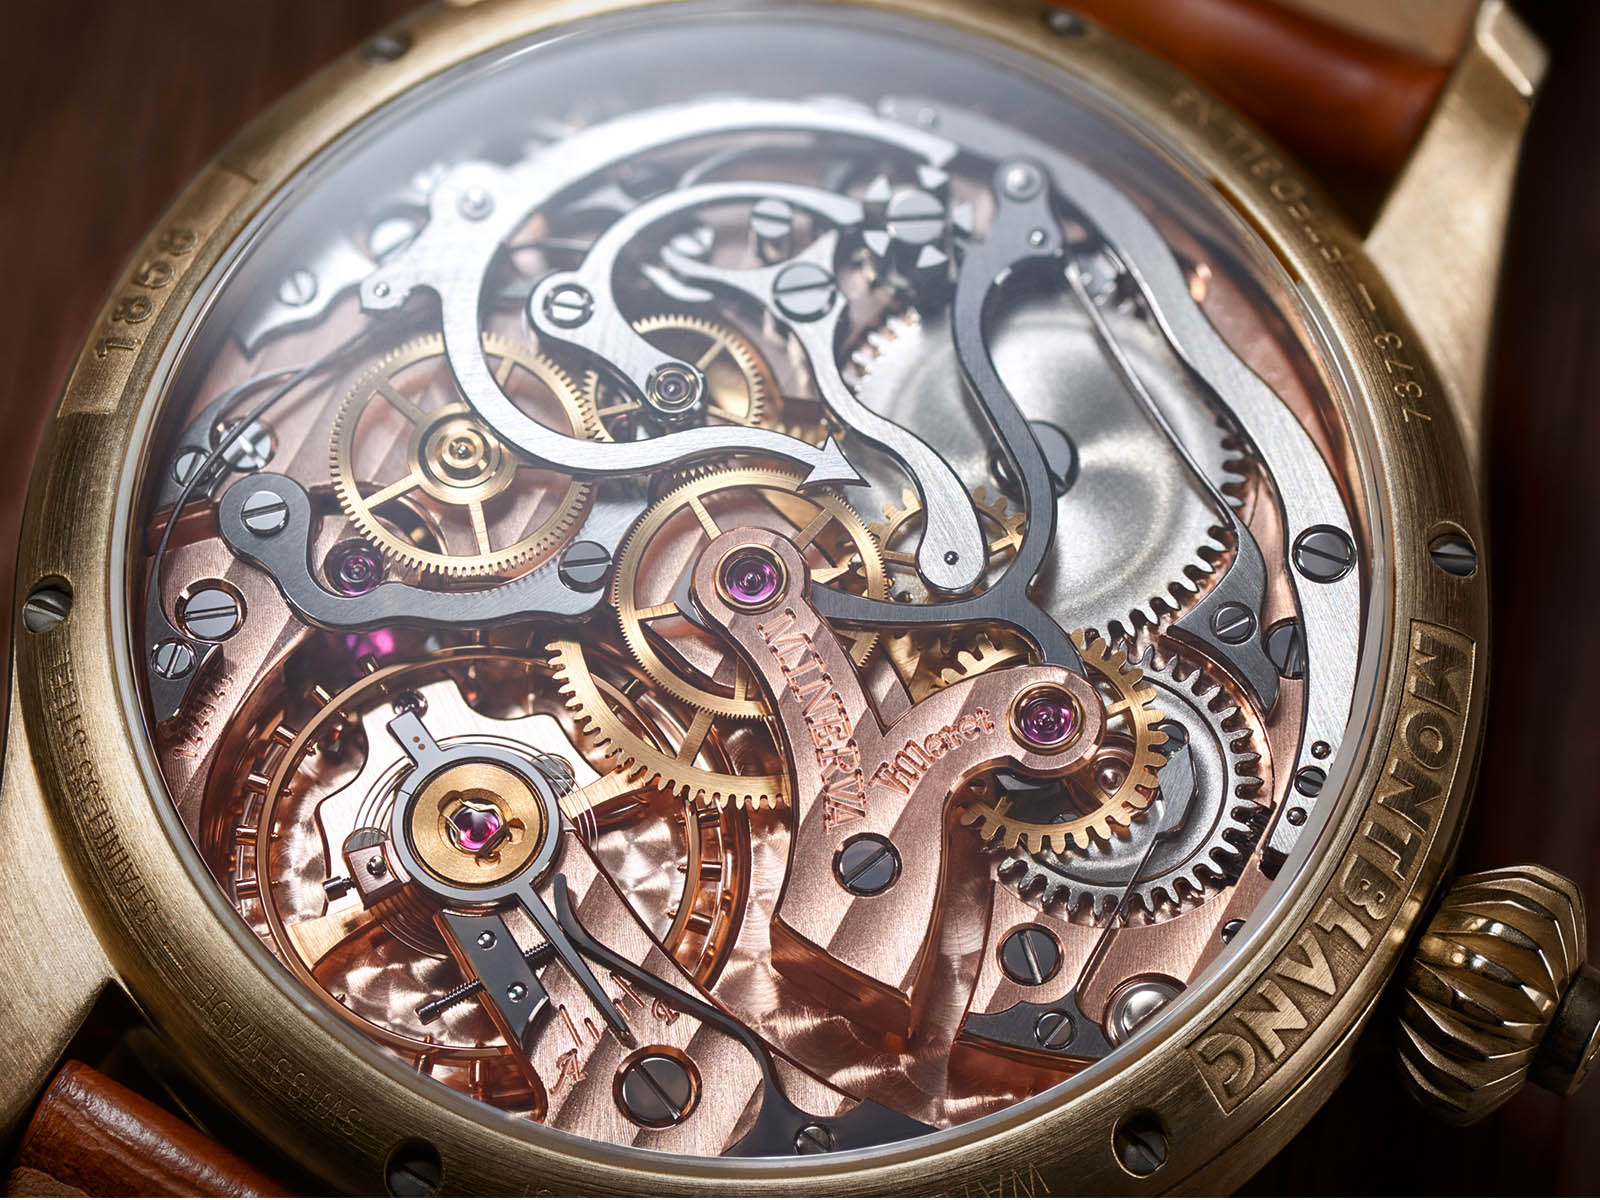 montblanc-1858-chronograph-tachymeter-limited-edition-salmon-dial-8.jpg